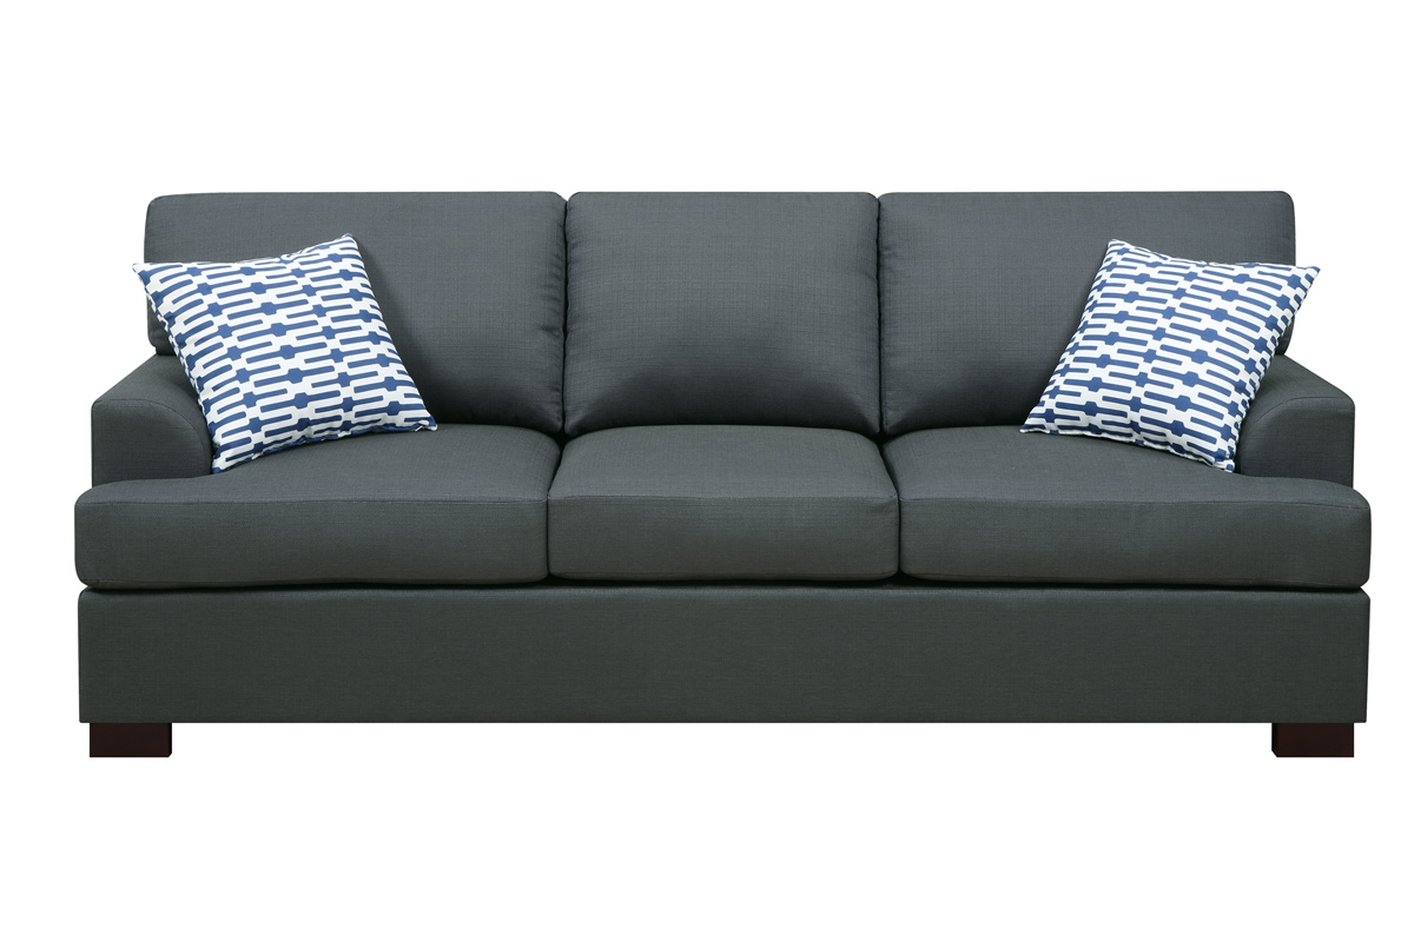 black fabric sofa chair reclinable poundex camille f7992 steal a